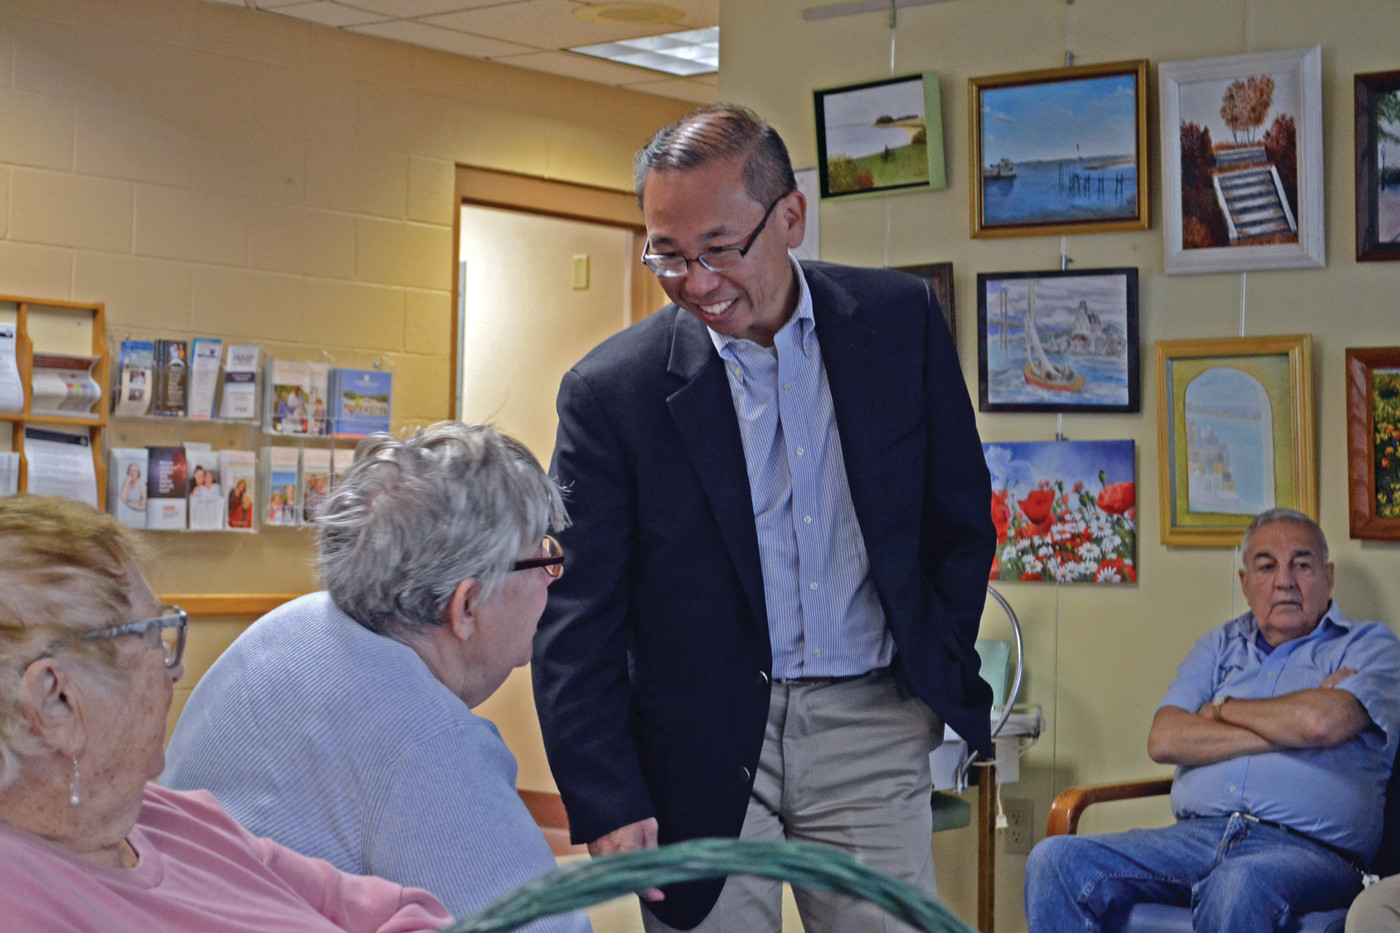 FIRING BACK: Cranston Mayor and Republican nominee for Governor Allan Fung, here visiting with residents at the Pilgrim Senior Center on Friday, responded sharply to critical comments from Morgan and Trillo.